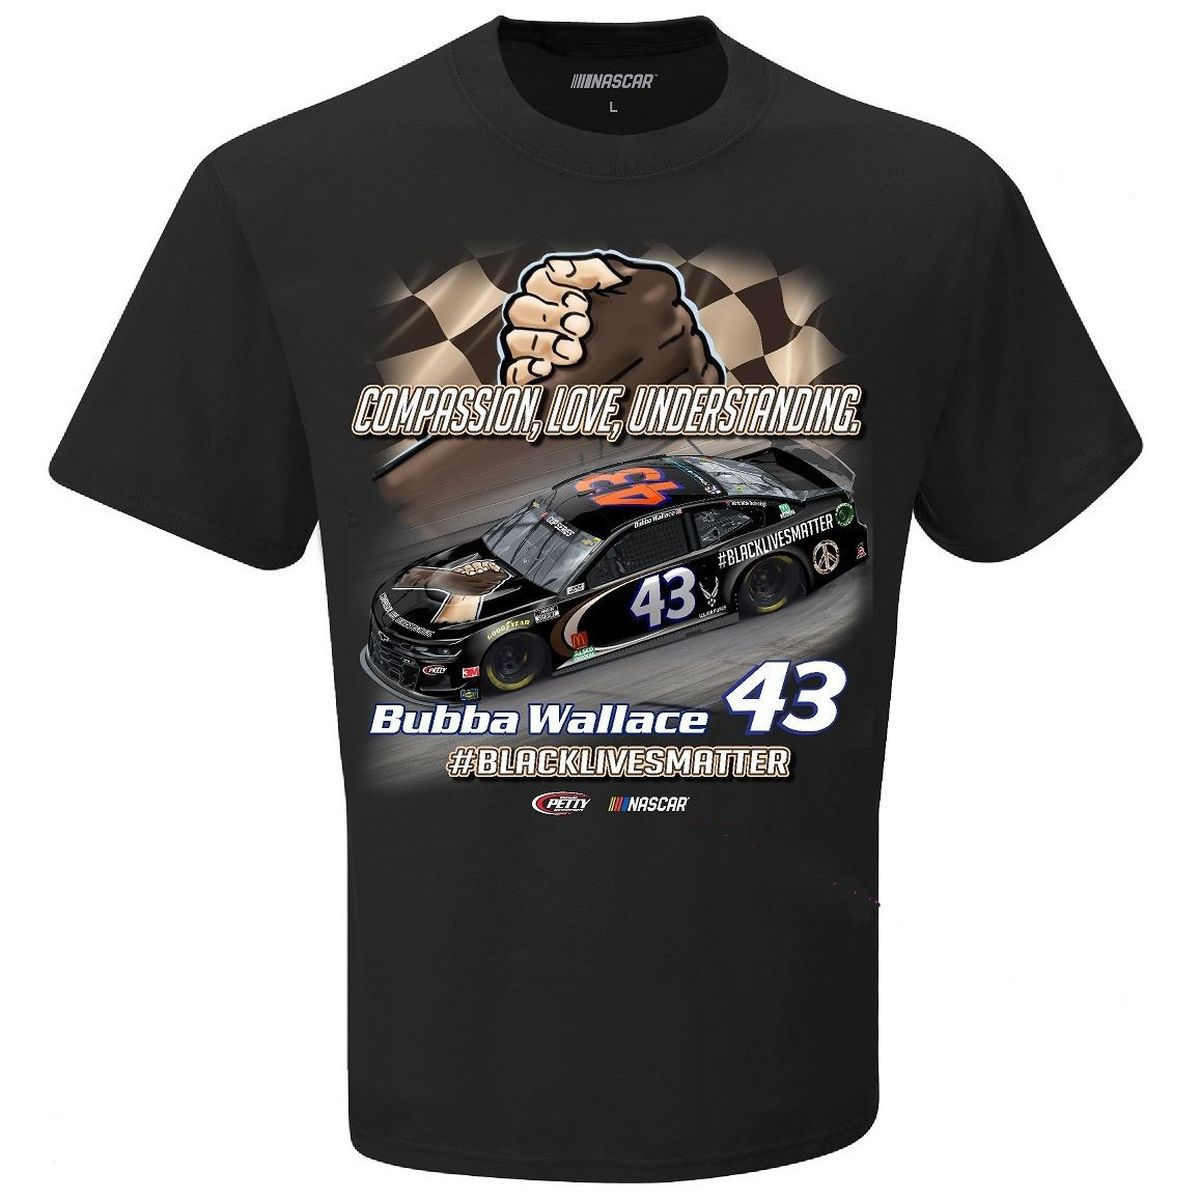 Bubba Wallace #43 2020 #BlackLivesMatter NASCAR Graphic T-shirt